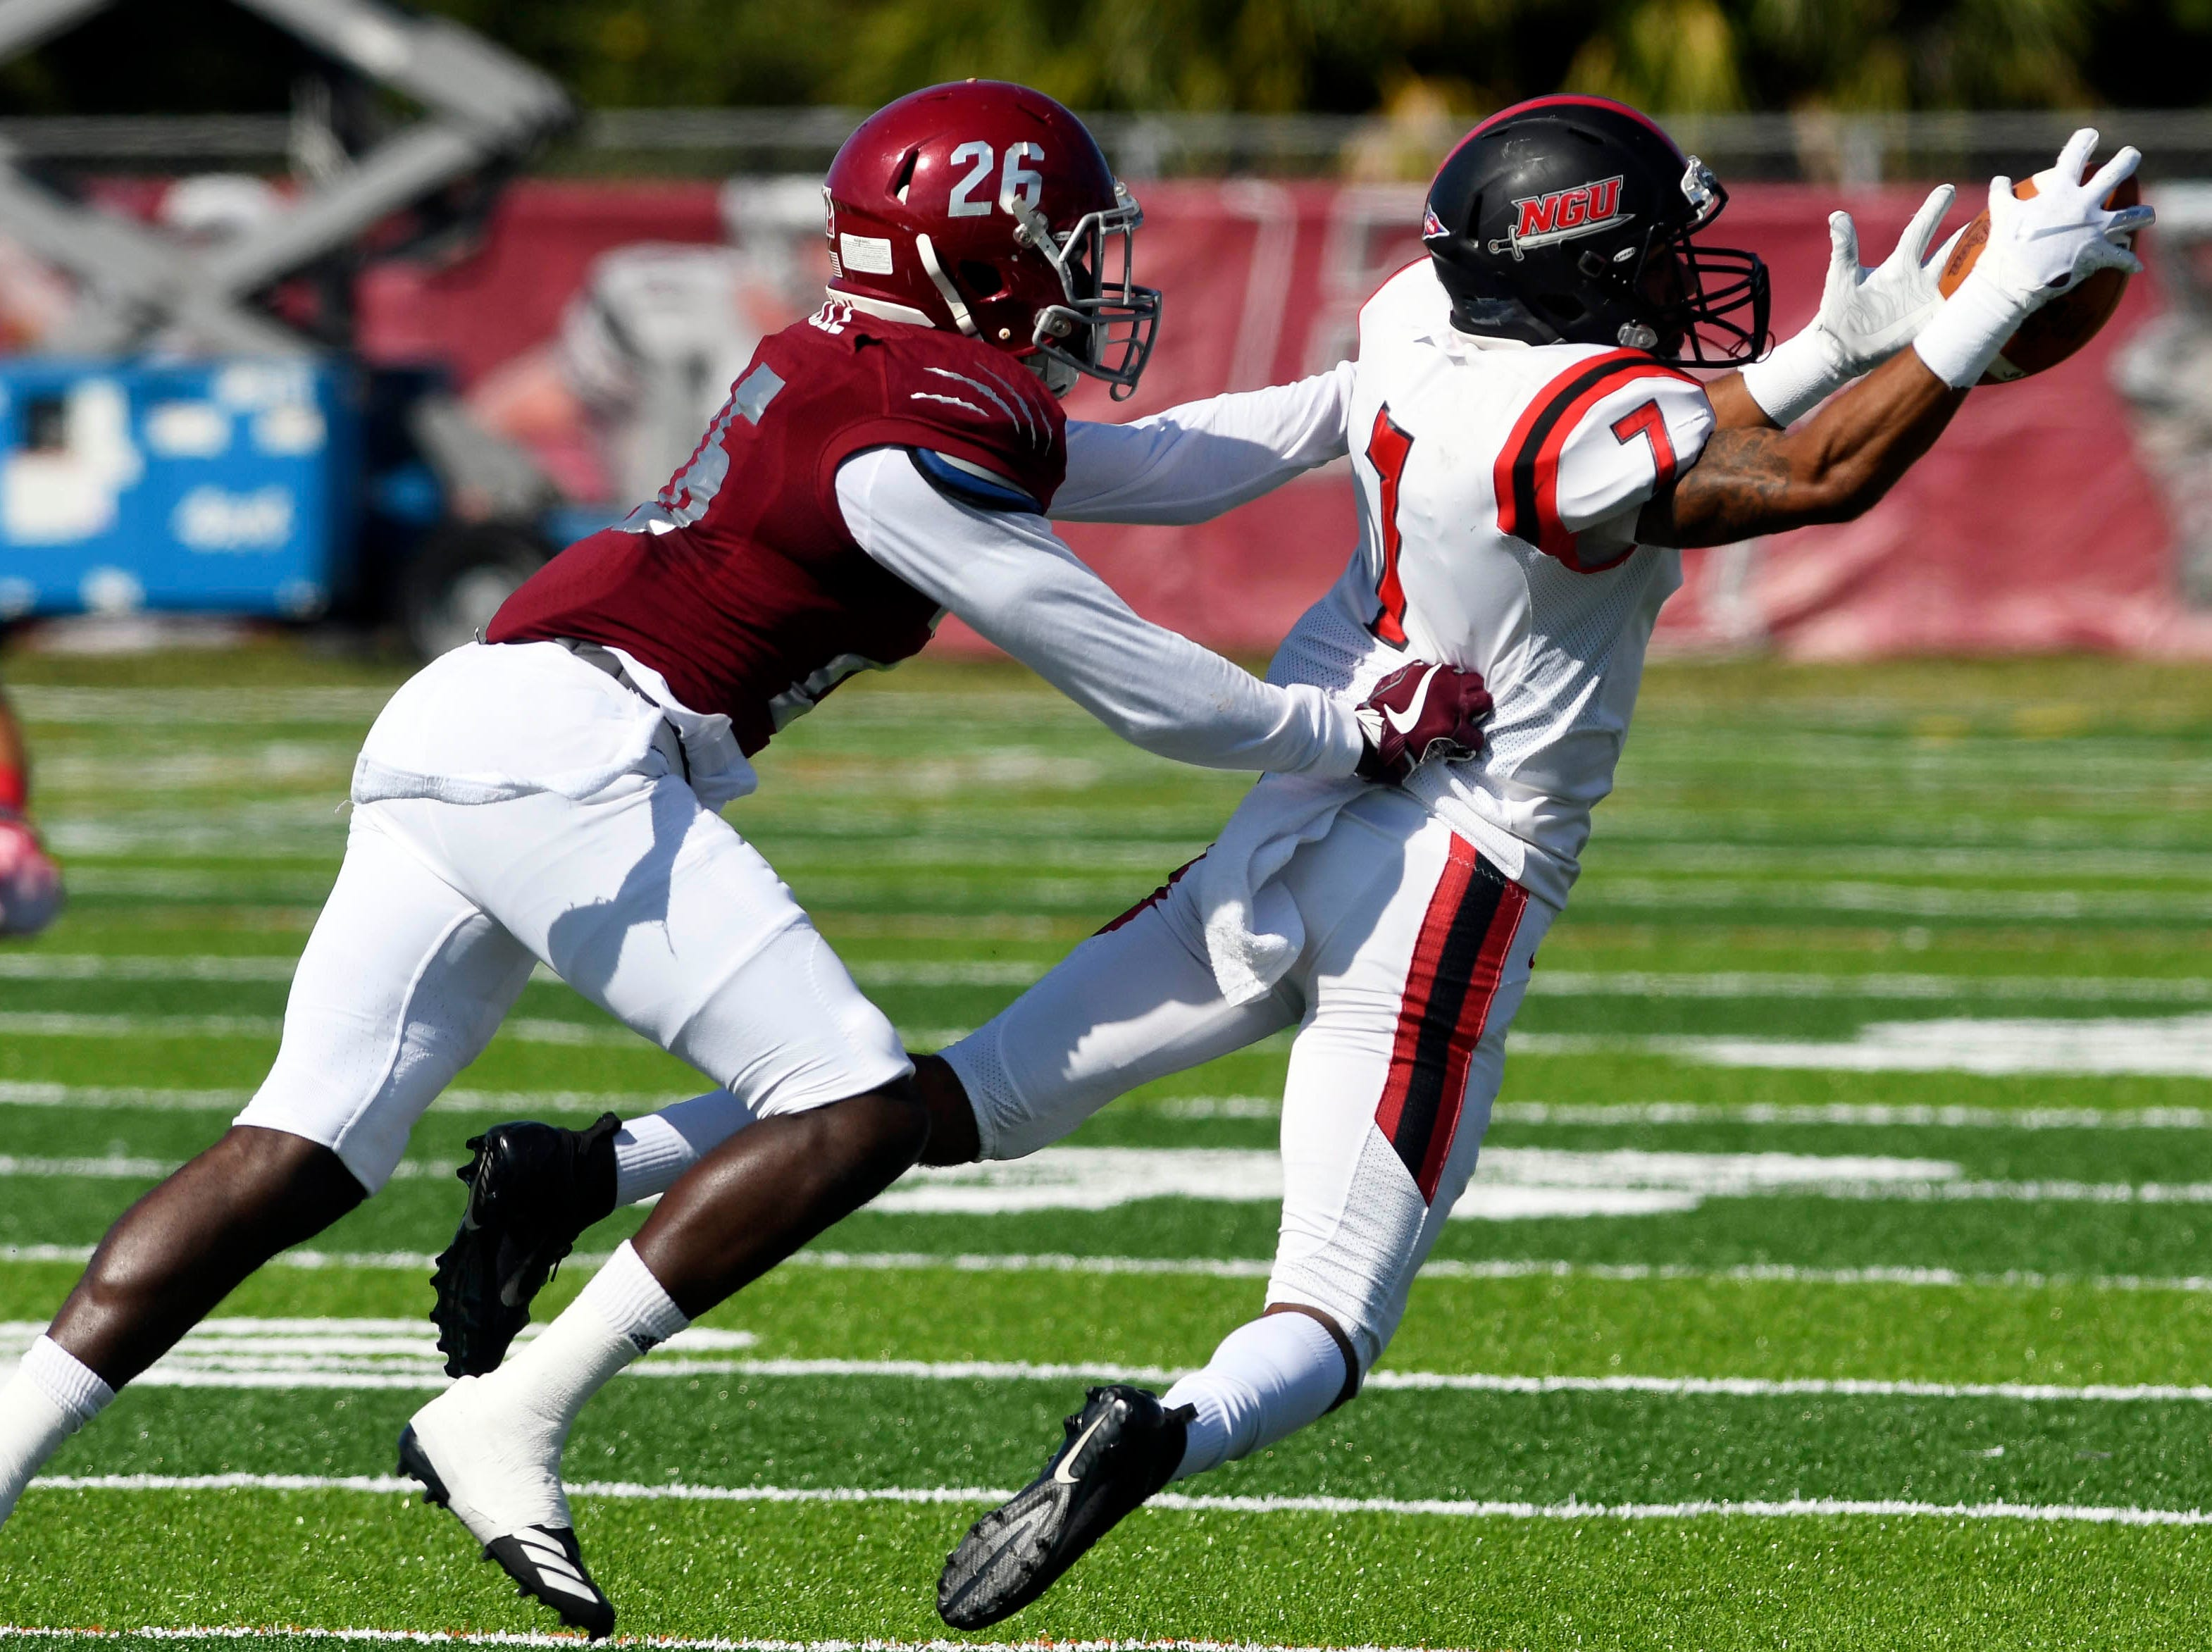 Demaijiay Rooks of North Greenville catches a pass in front of Florida Tech defender Richard Leveille during Saturday's game.